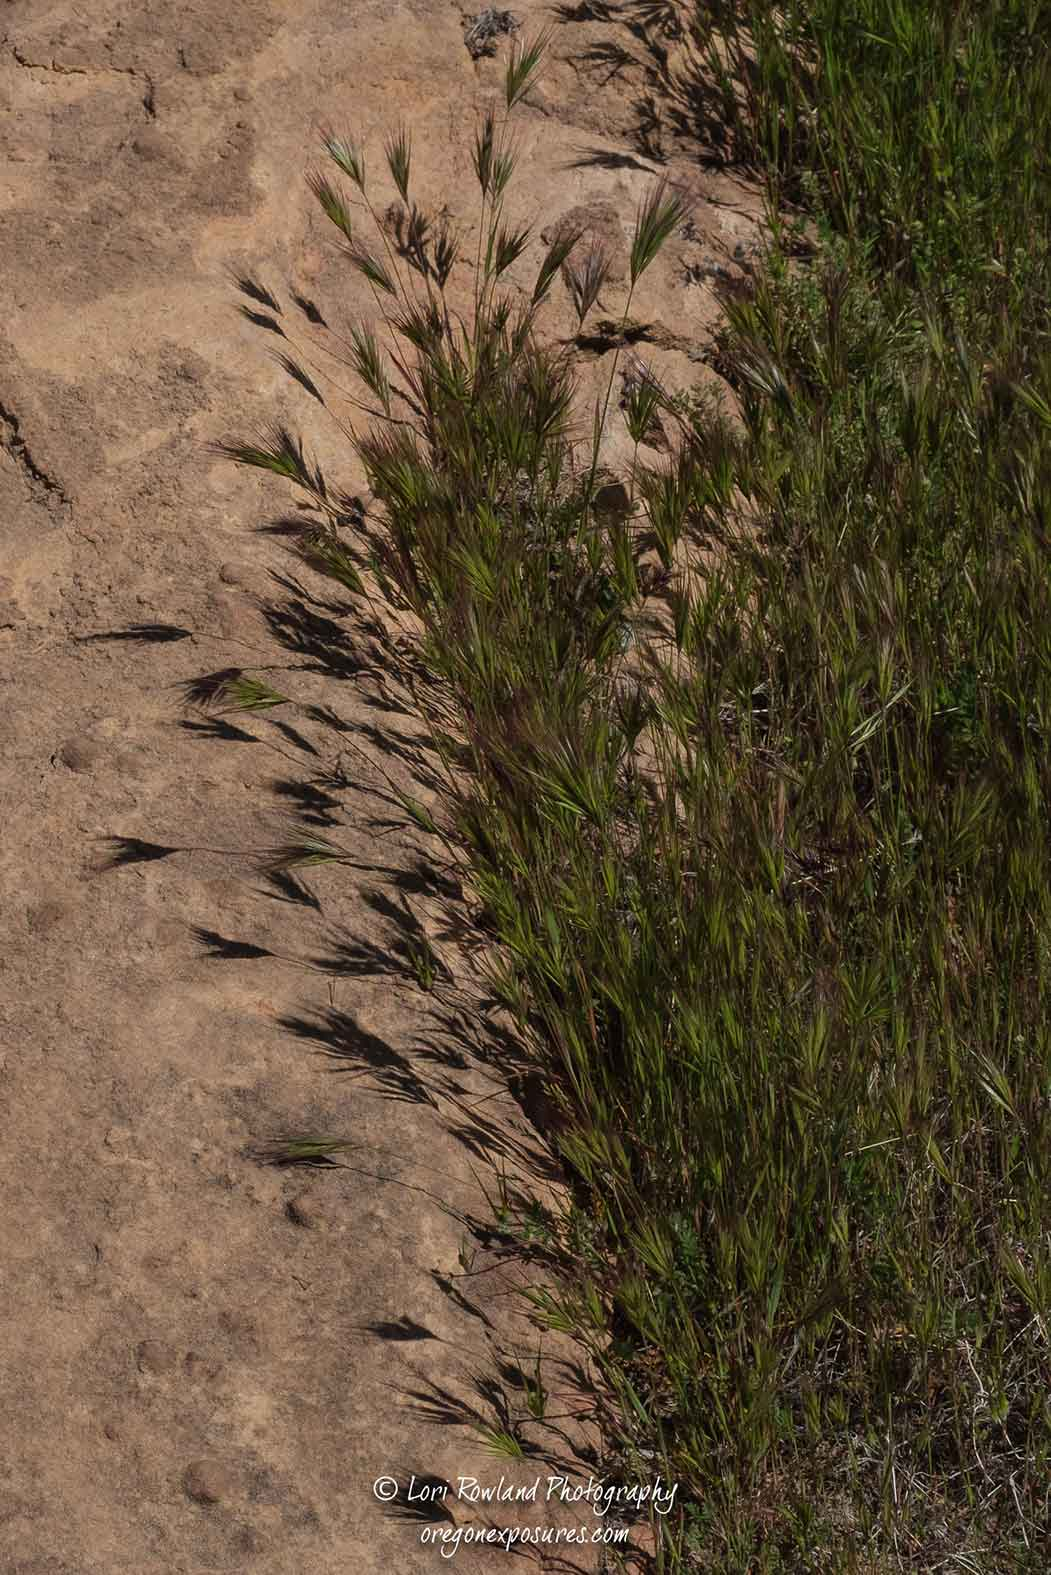 Foxtail Cress grass... hard to tell the grass from the shadow!